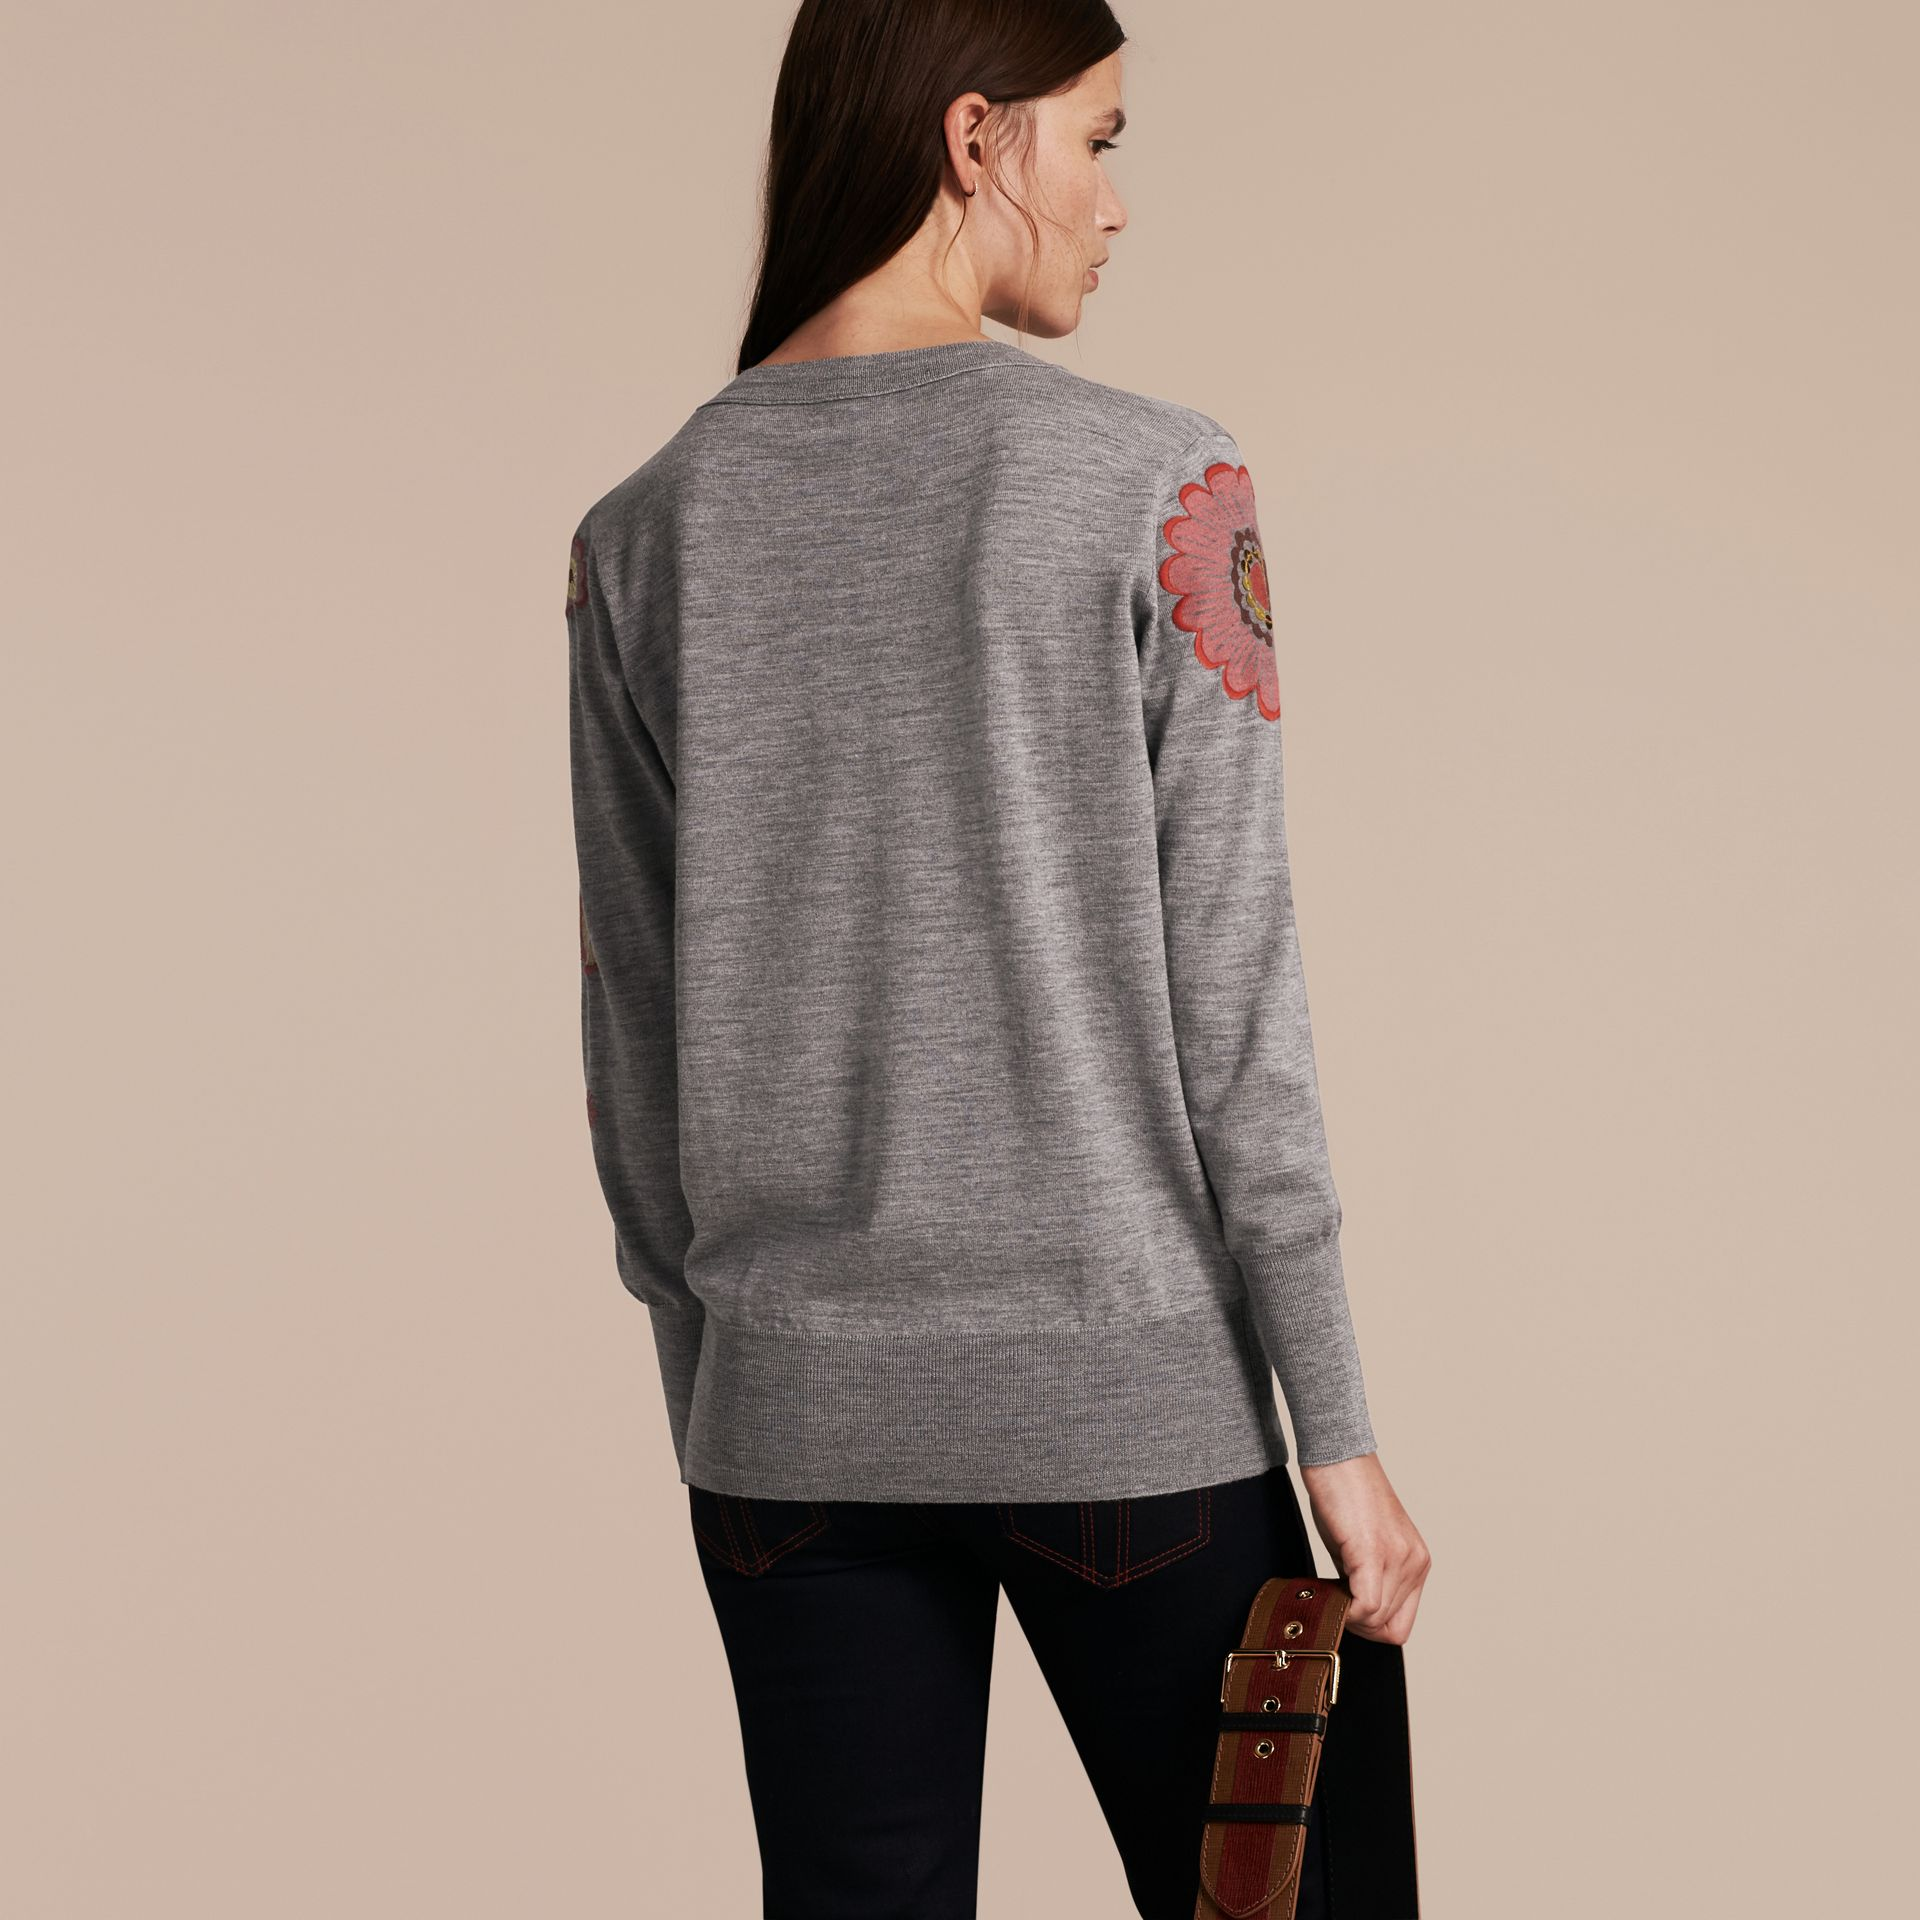 Mid grey melange Floral Embellished Merino Wool V-neck Sweater - gallery image 3